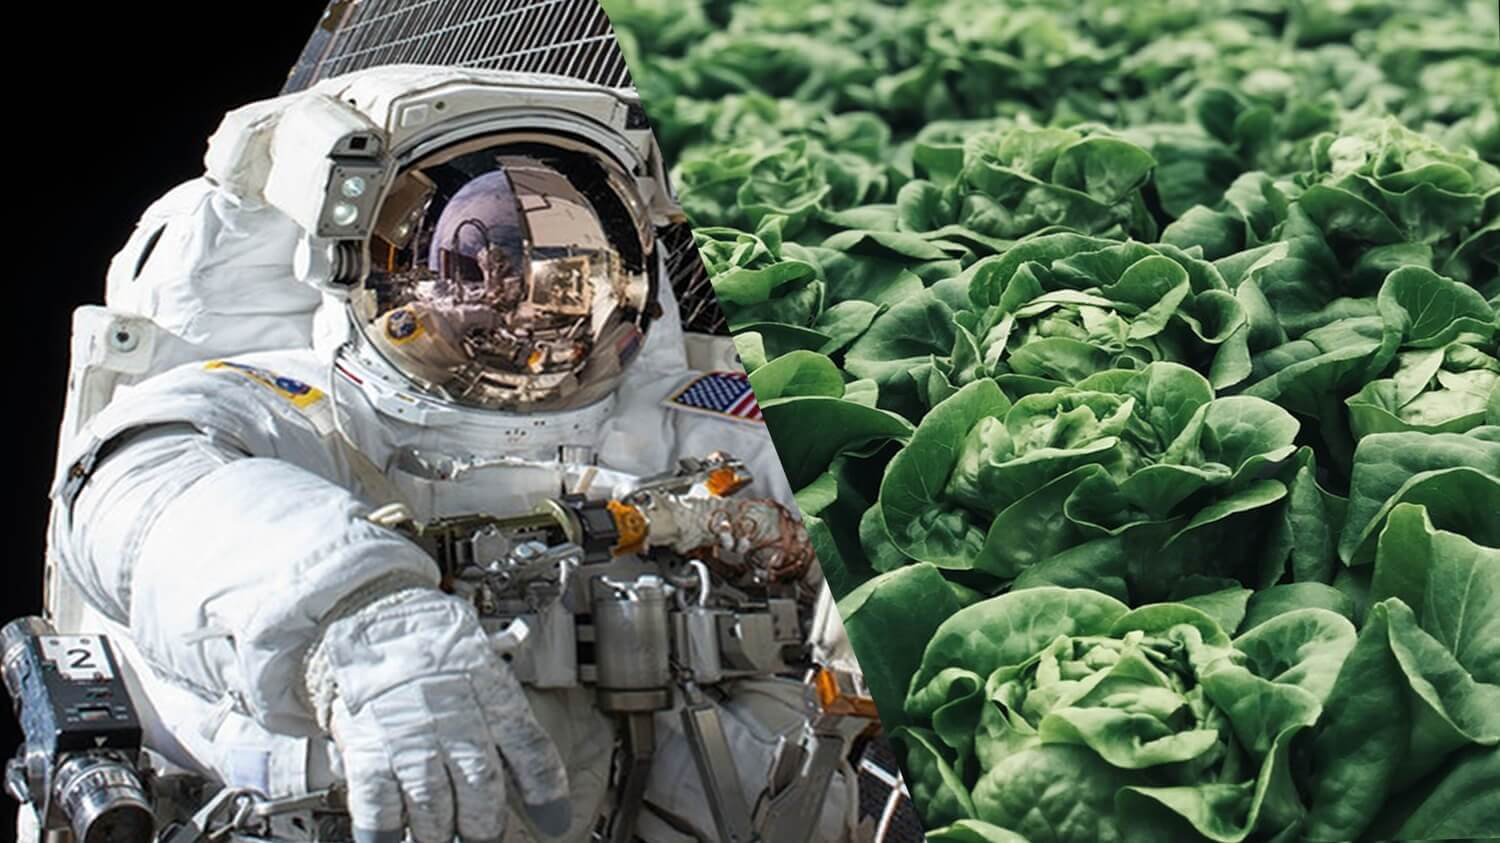 NASA's 'Veggie' Is Growing Vegetables for Astronauts in Outer Space